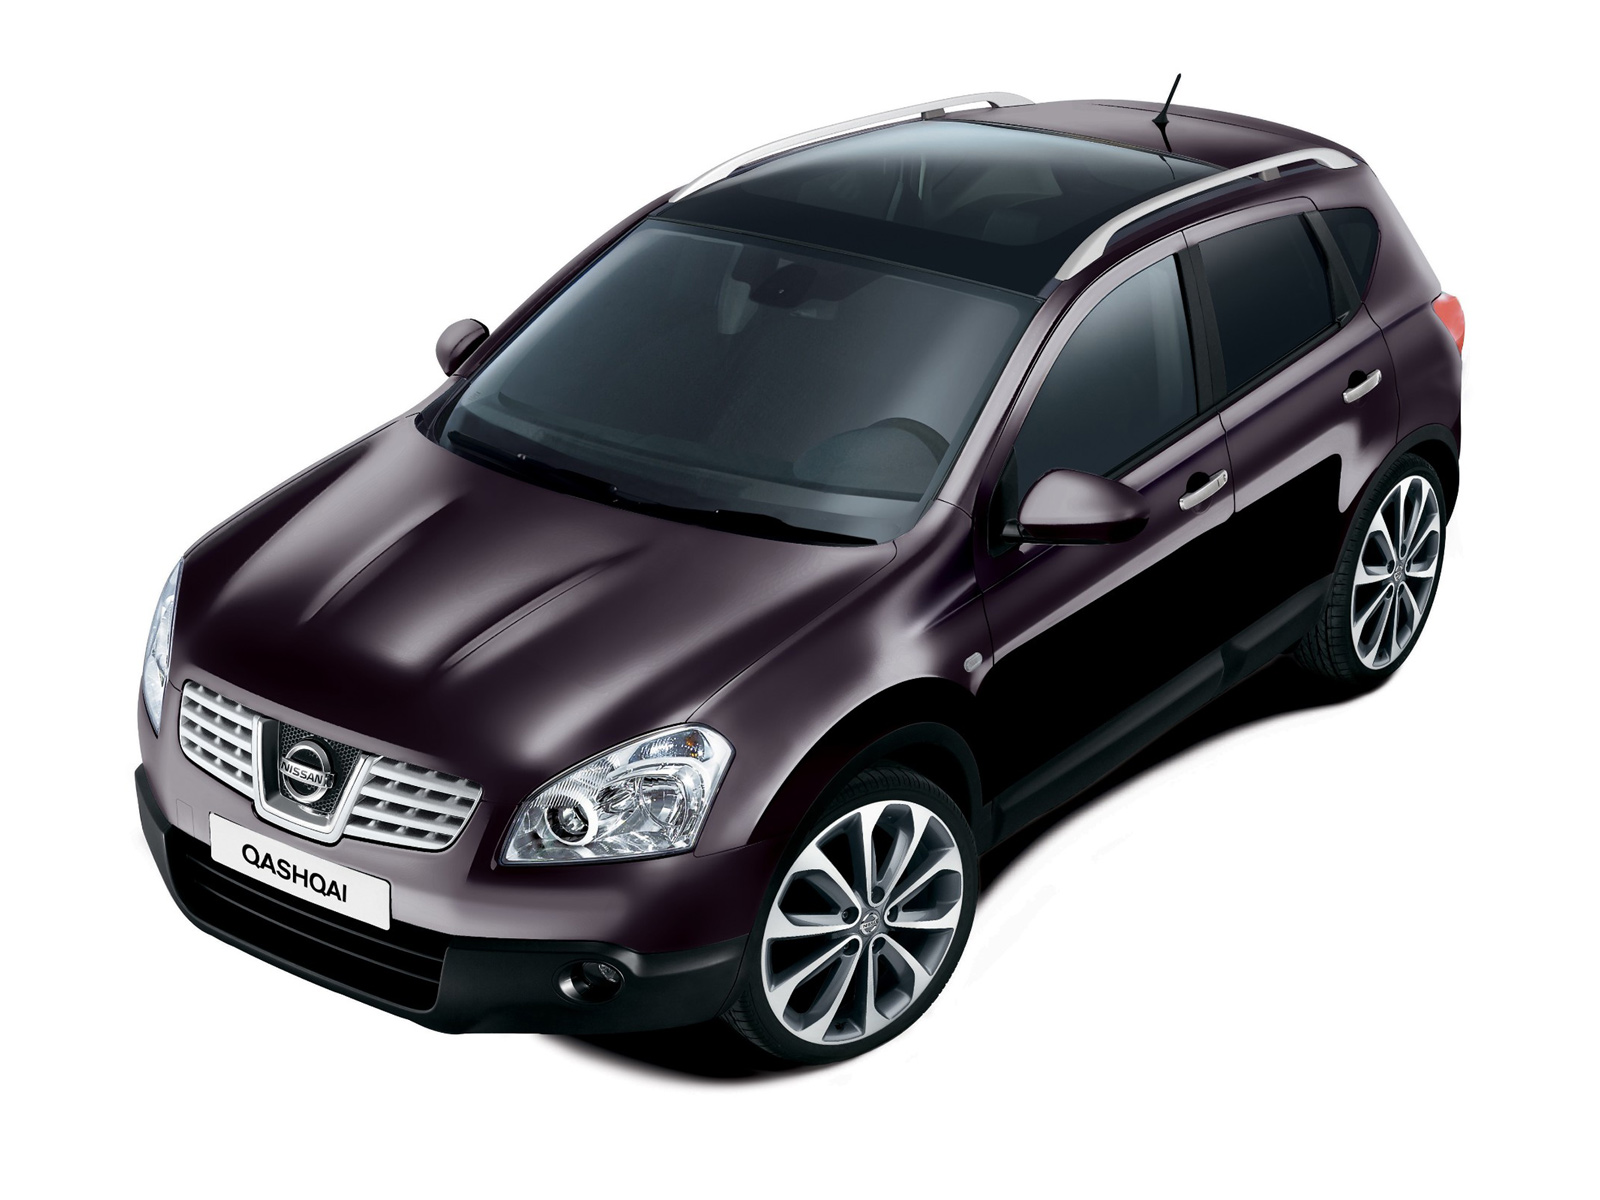 nissan qashqai 2009 review amazing pictures and images look at the car. Black Bedroom Furniture Sets. Home Design Ideas